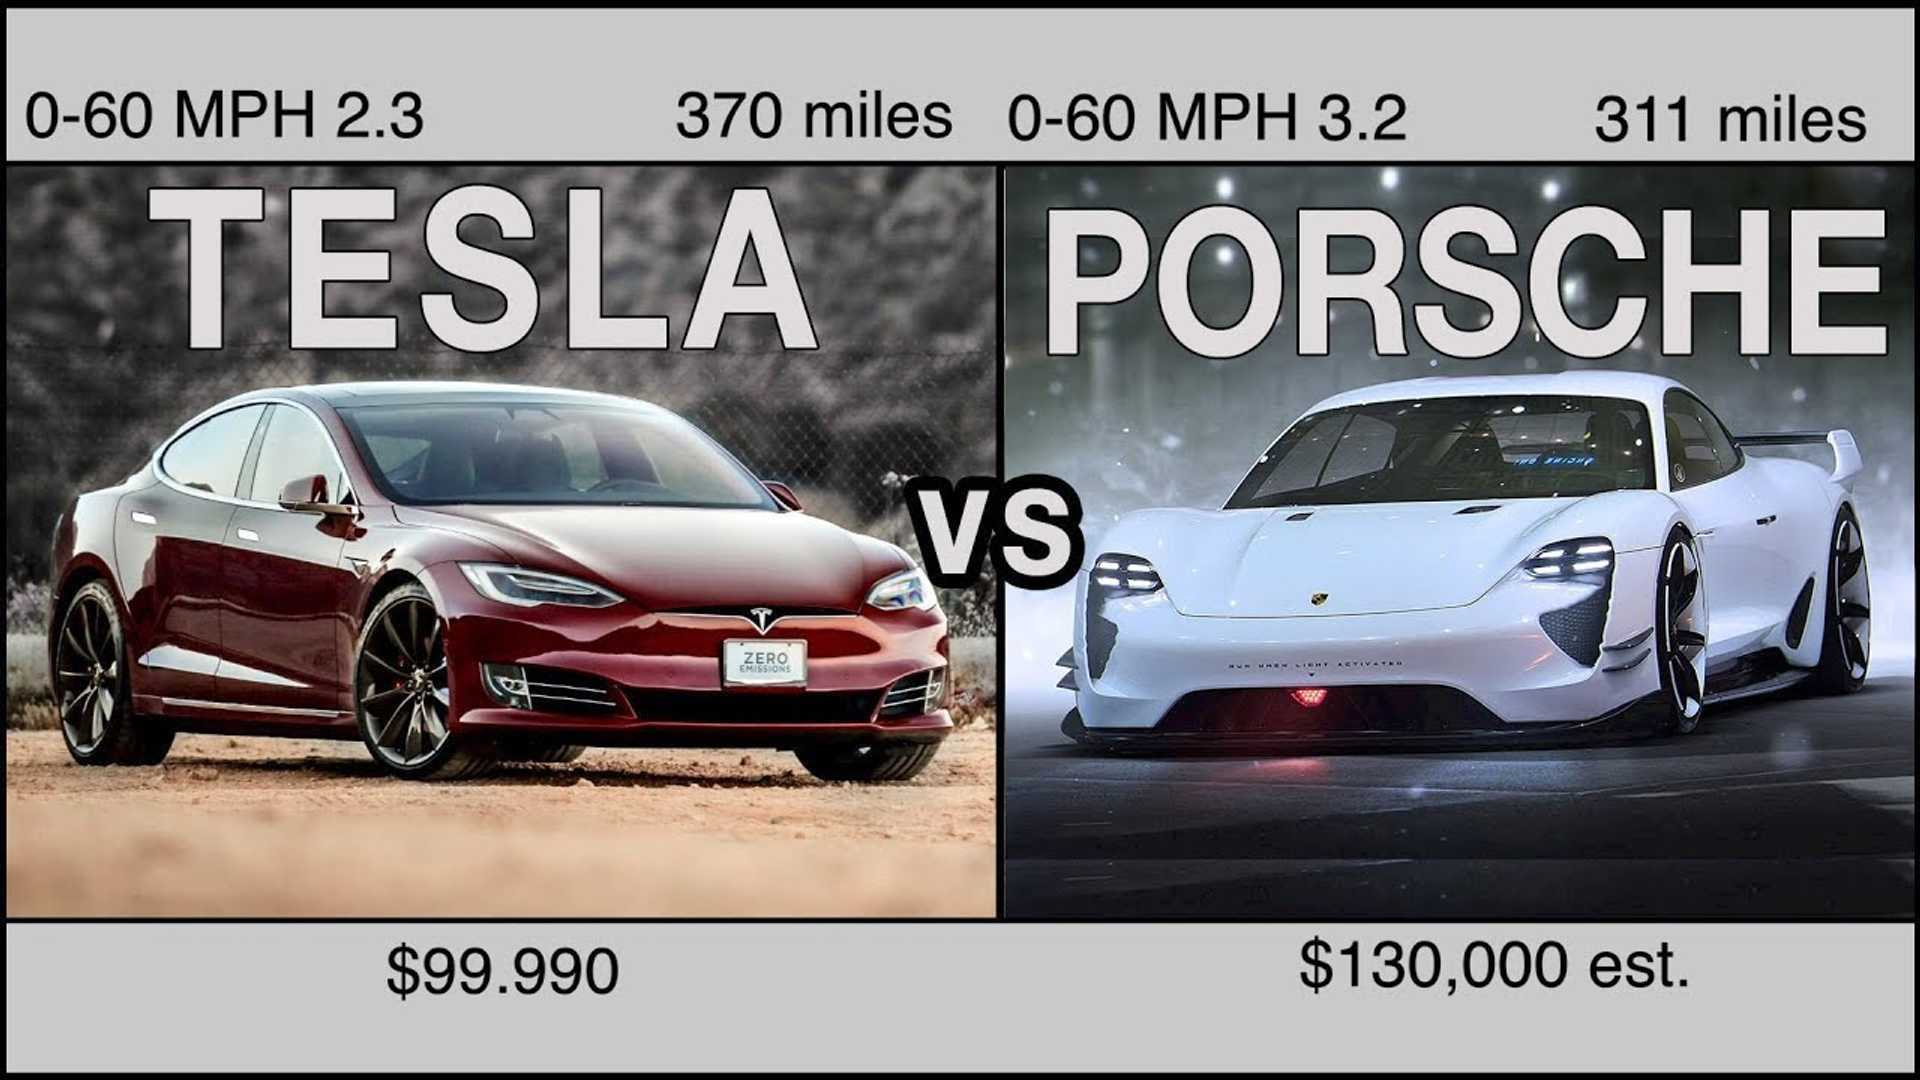 Tesla Model S Vs Porsche Taycan Compared By GasTrol Video